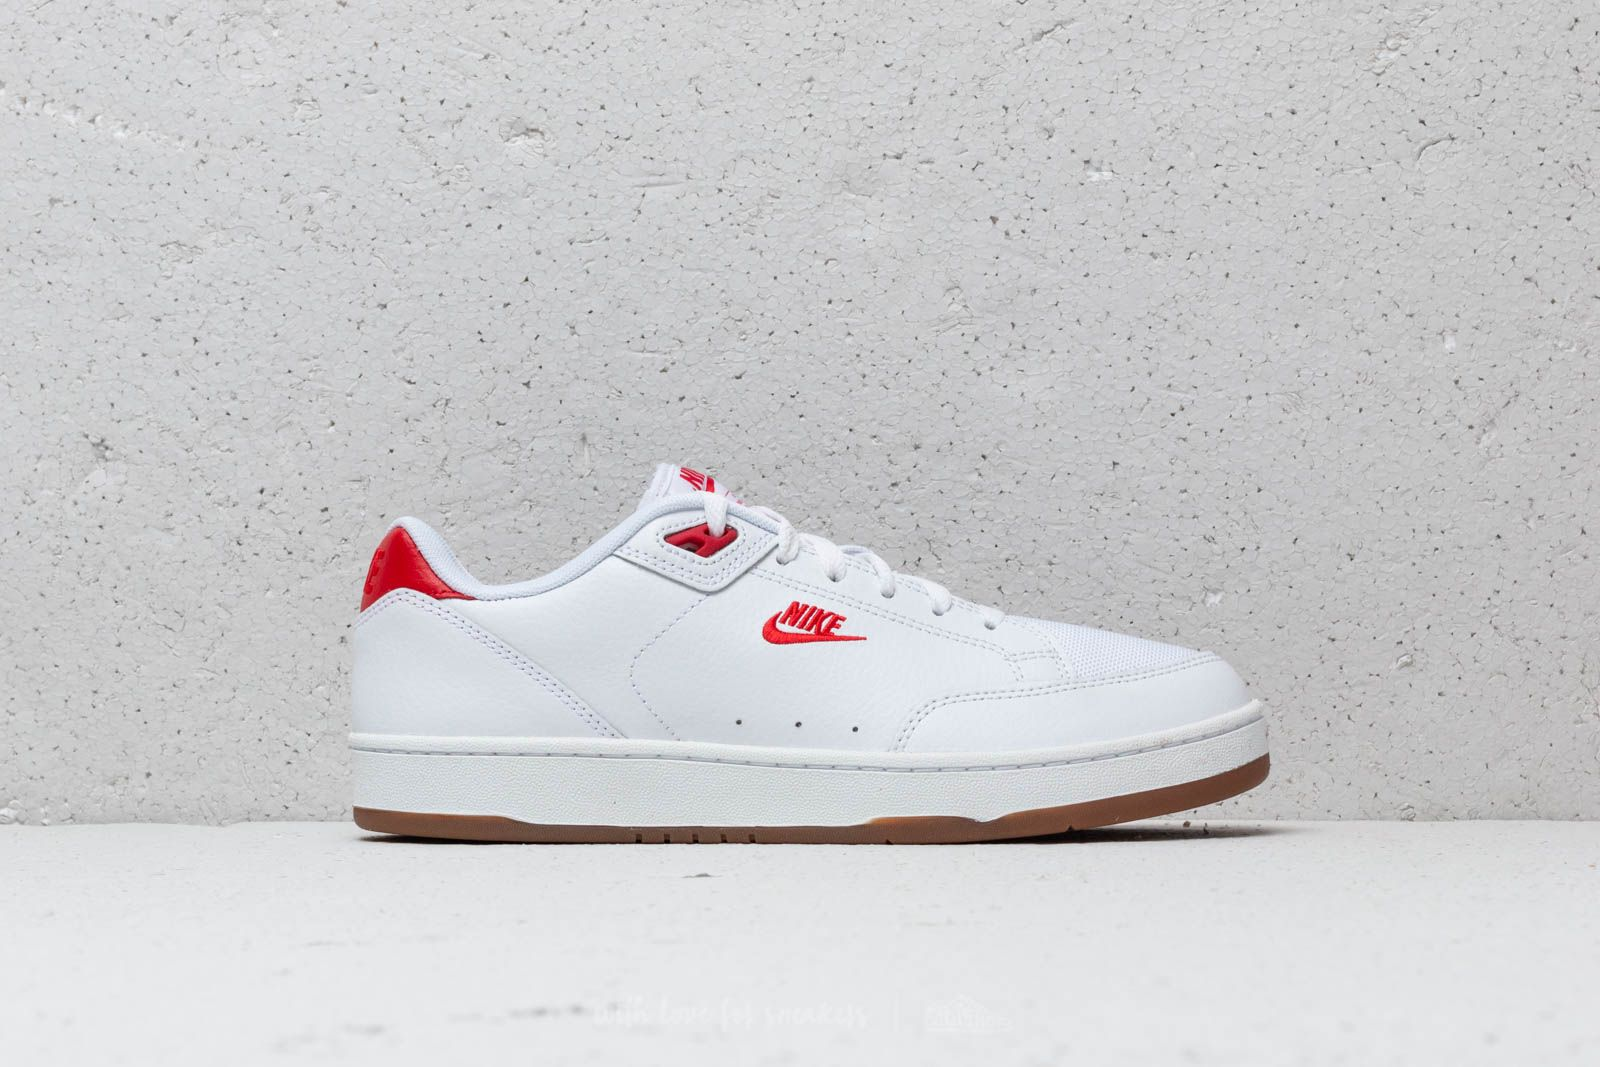 hot sale online 40348 19b00 Nike Grandstand II Premium White  University Red at a great price £86 buy at